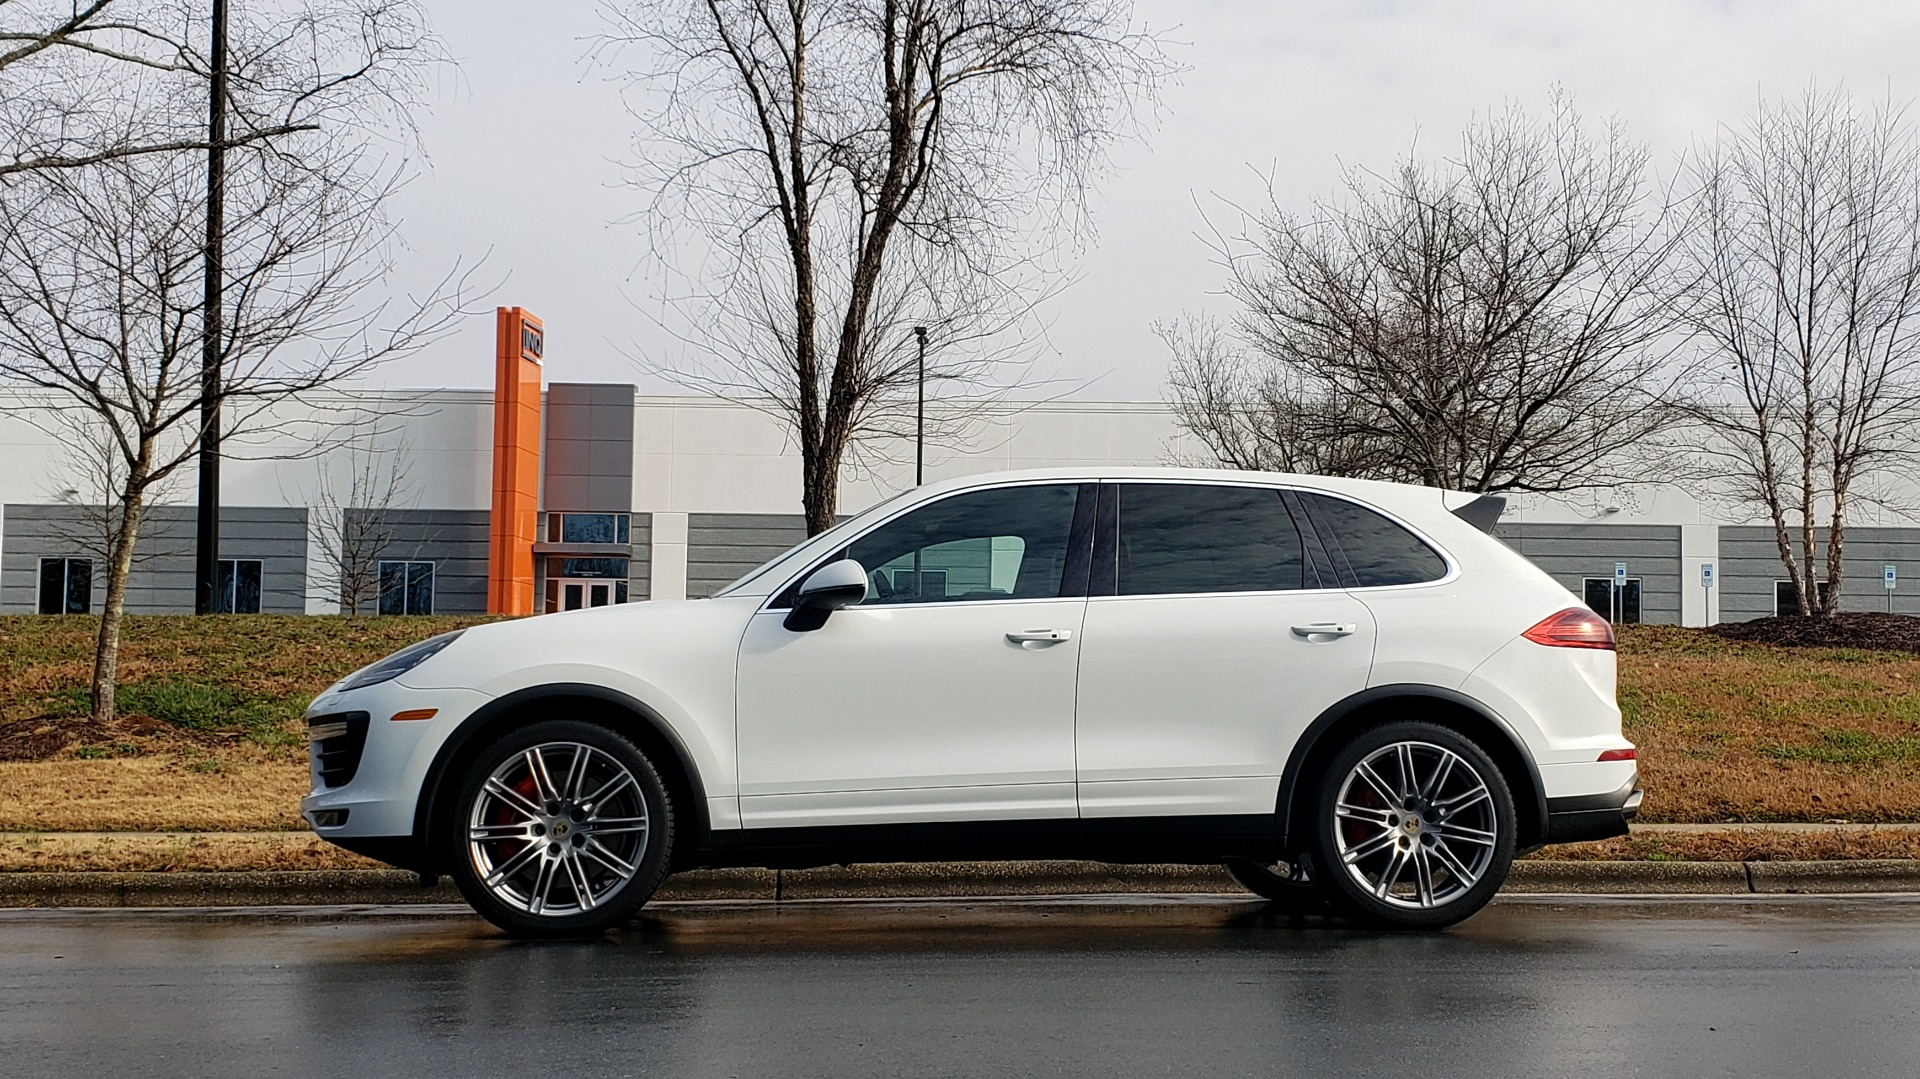 Used 2015 Porsche CAYENNE TURBO V8 / PREMIUM / NAV / SUNROOF / PARK ASSIST / LCA / REARVIEW for sale $47,995 at Formula Imports in Charlotte NC 28227 3